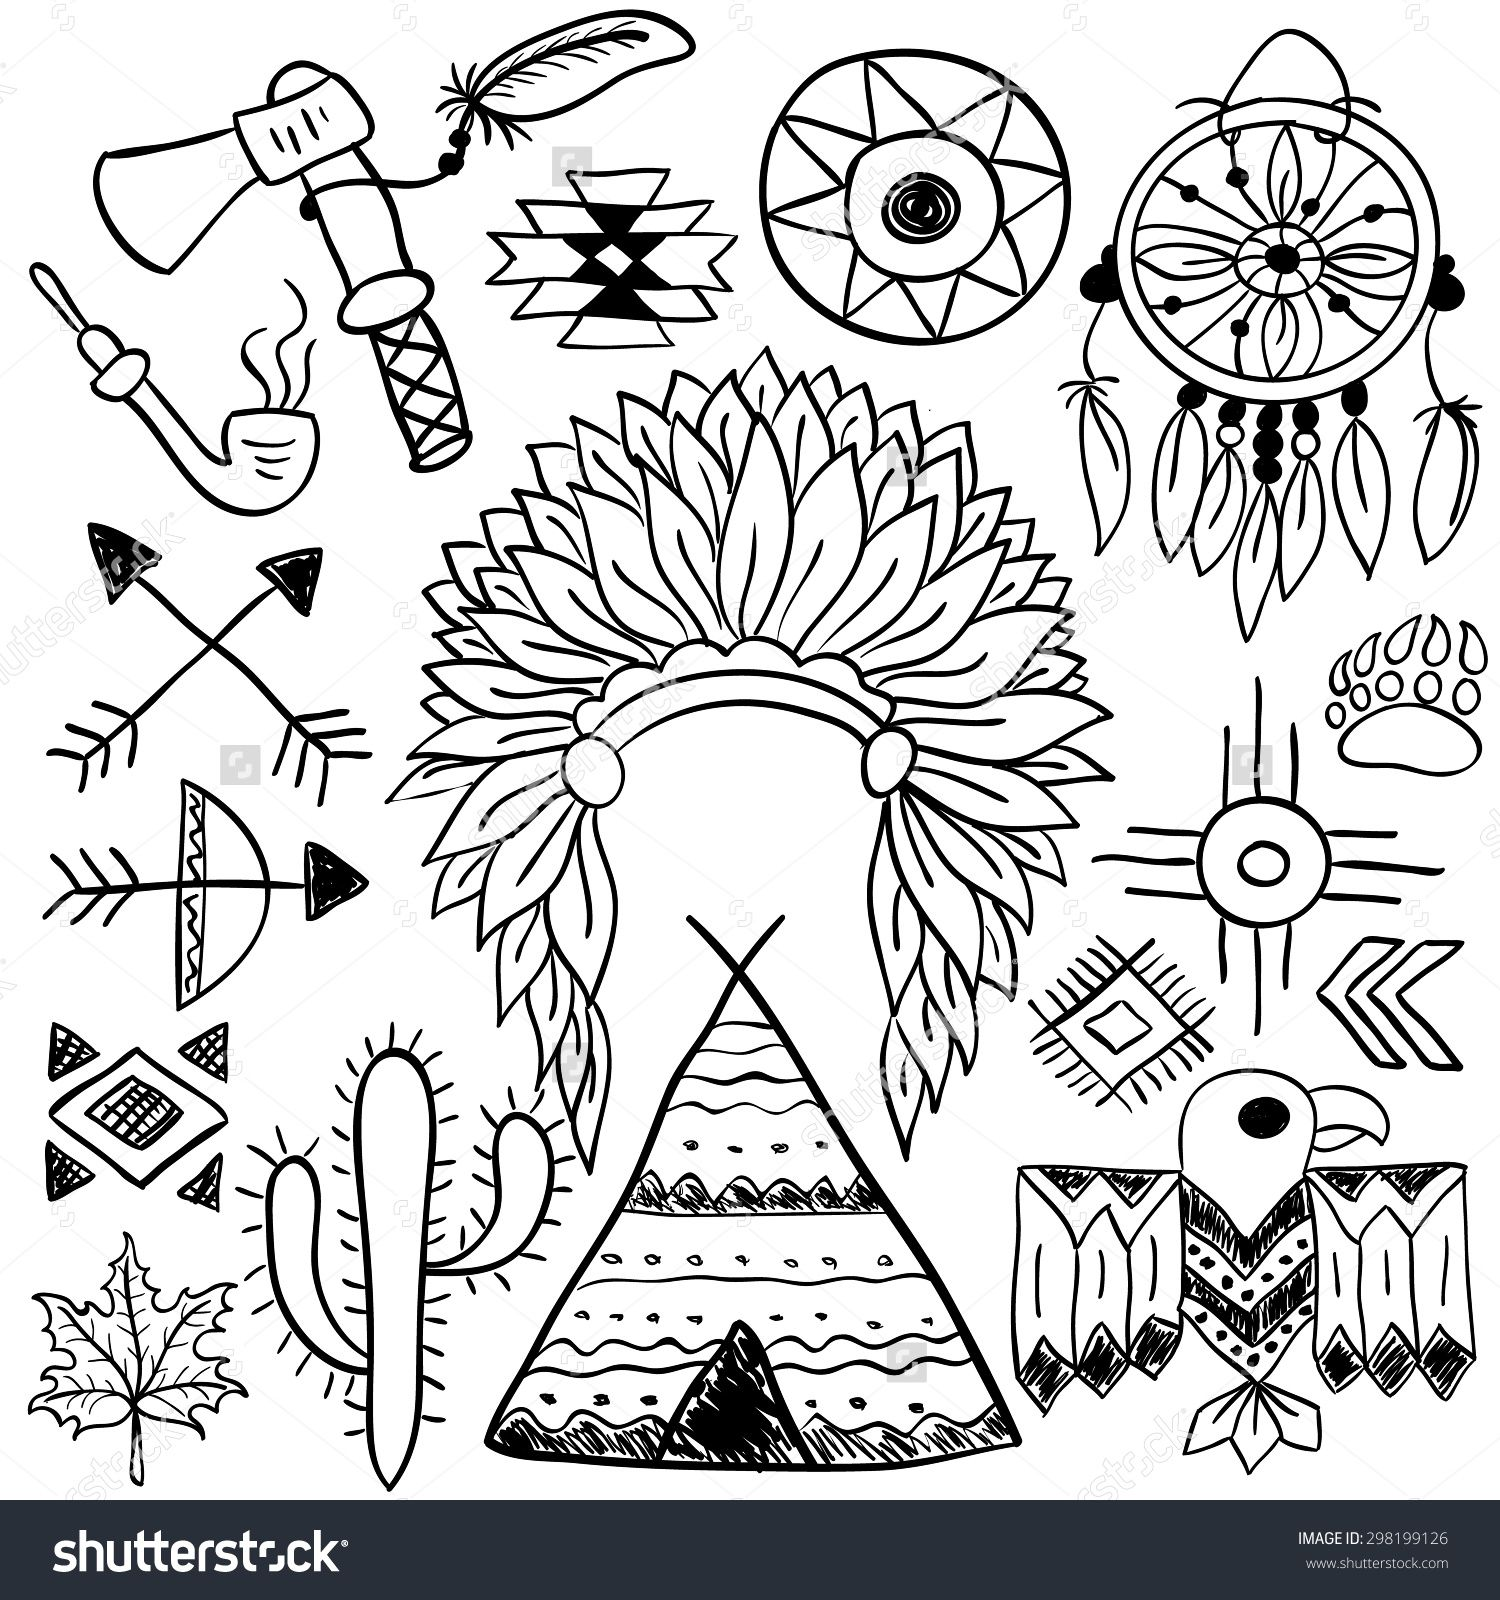 Hand drawn doodle vector elements set (vol. 5 of 9